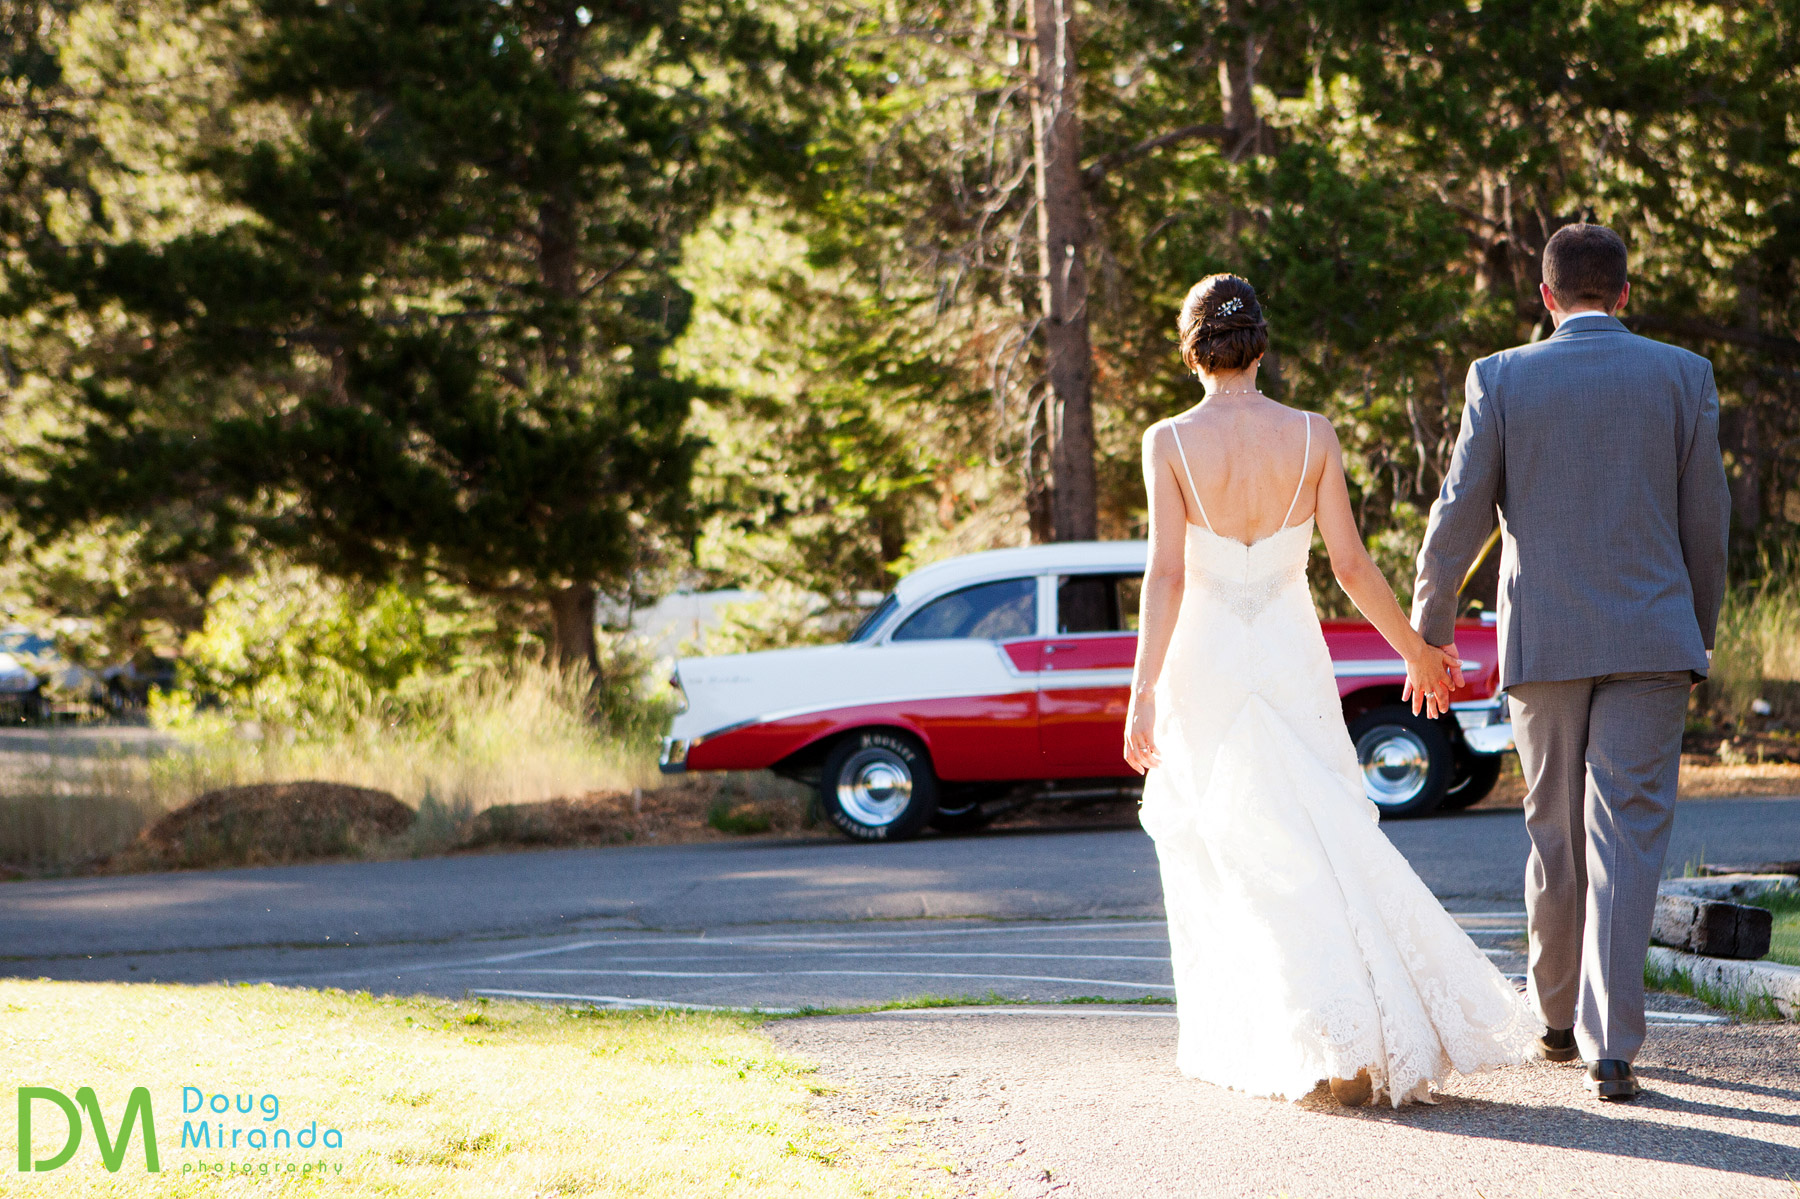 tahoe paradise park photos of a wedding